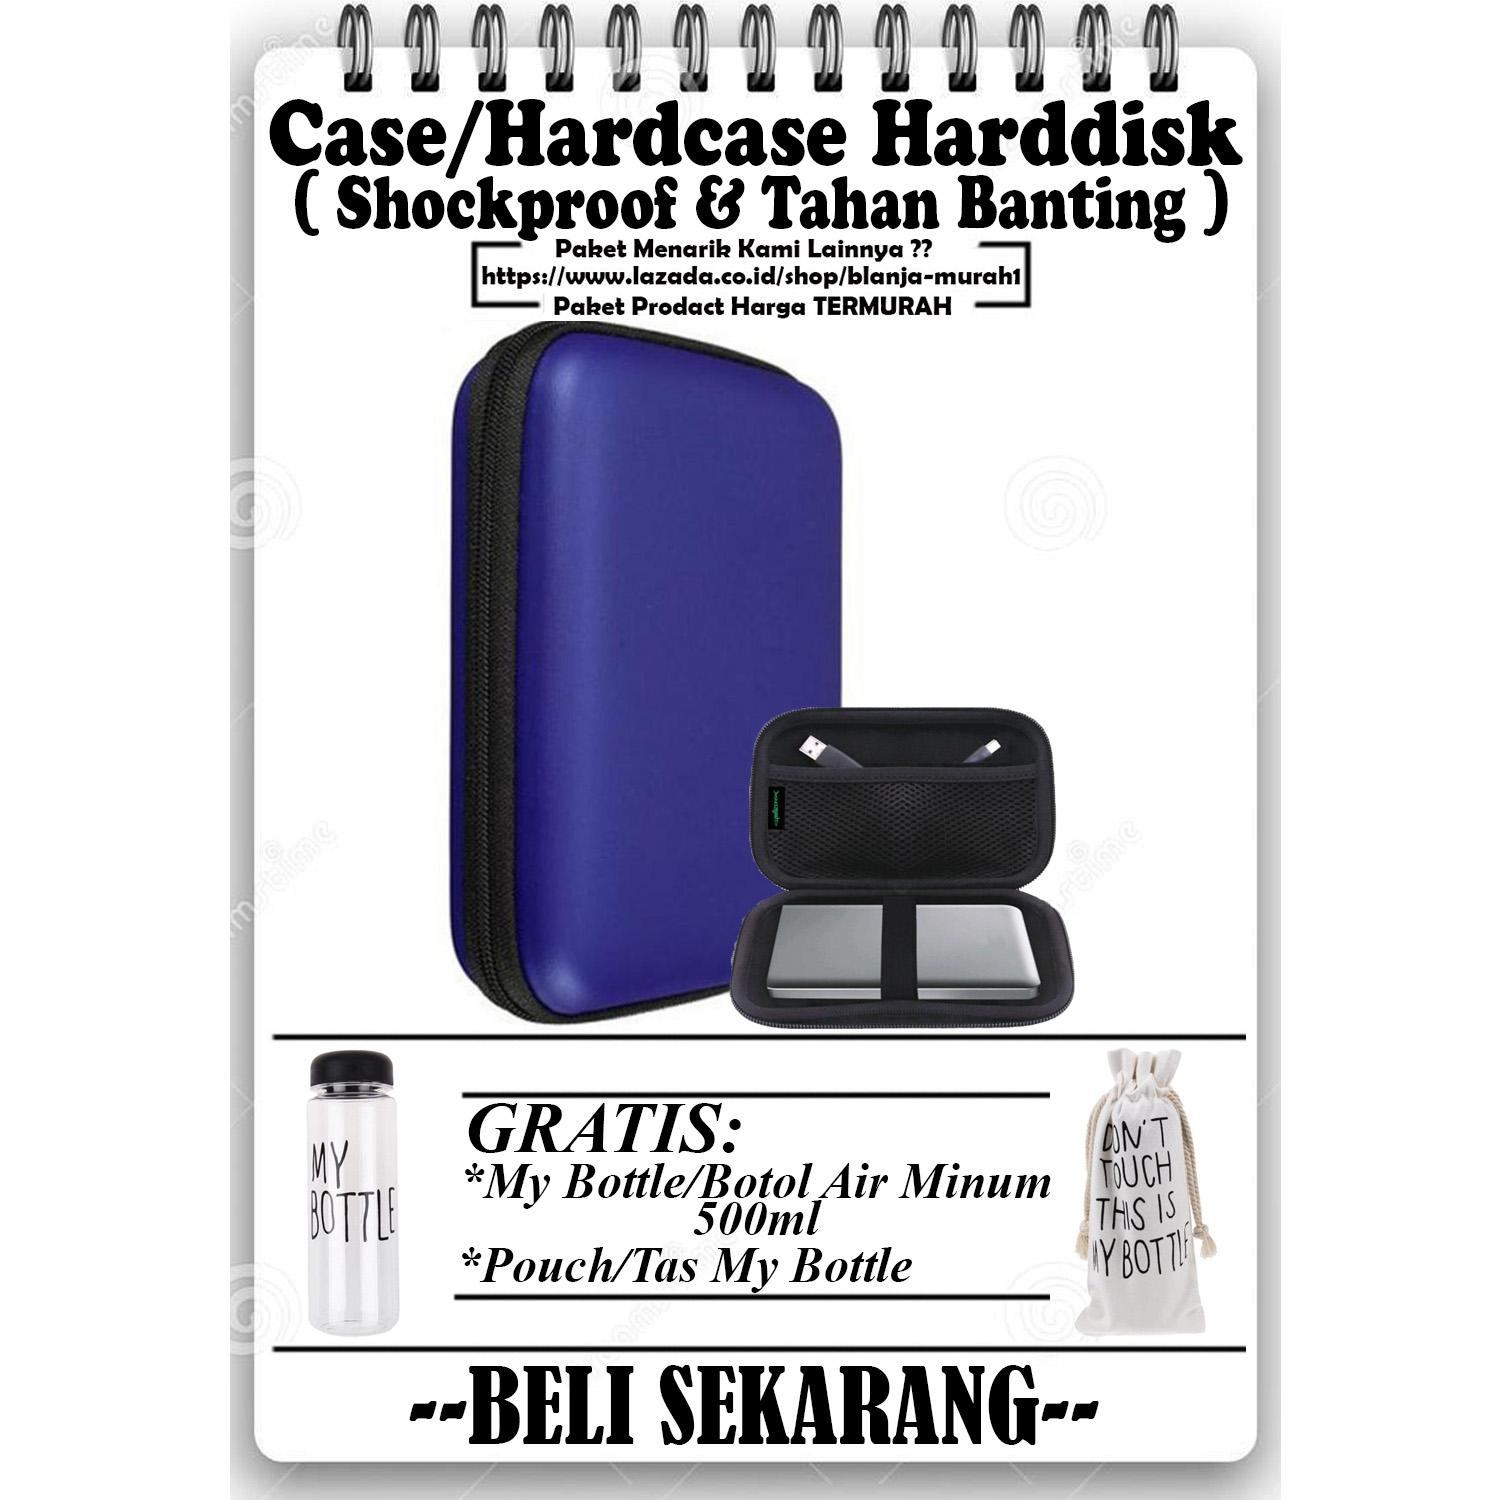 Promo Case harddisk Hard Case Shockproof Tas Hardisk / Powerbank Tahan Banting for External HDD 2.5 inch Pouch Bag - Biru - GRATIS My Bottle / Botol Air Minum 500ml